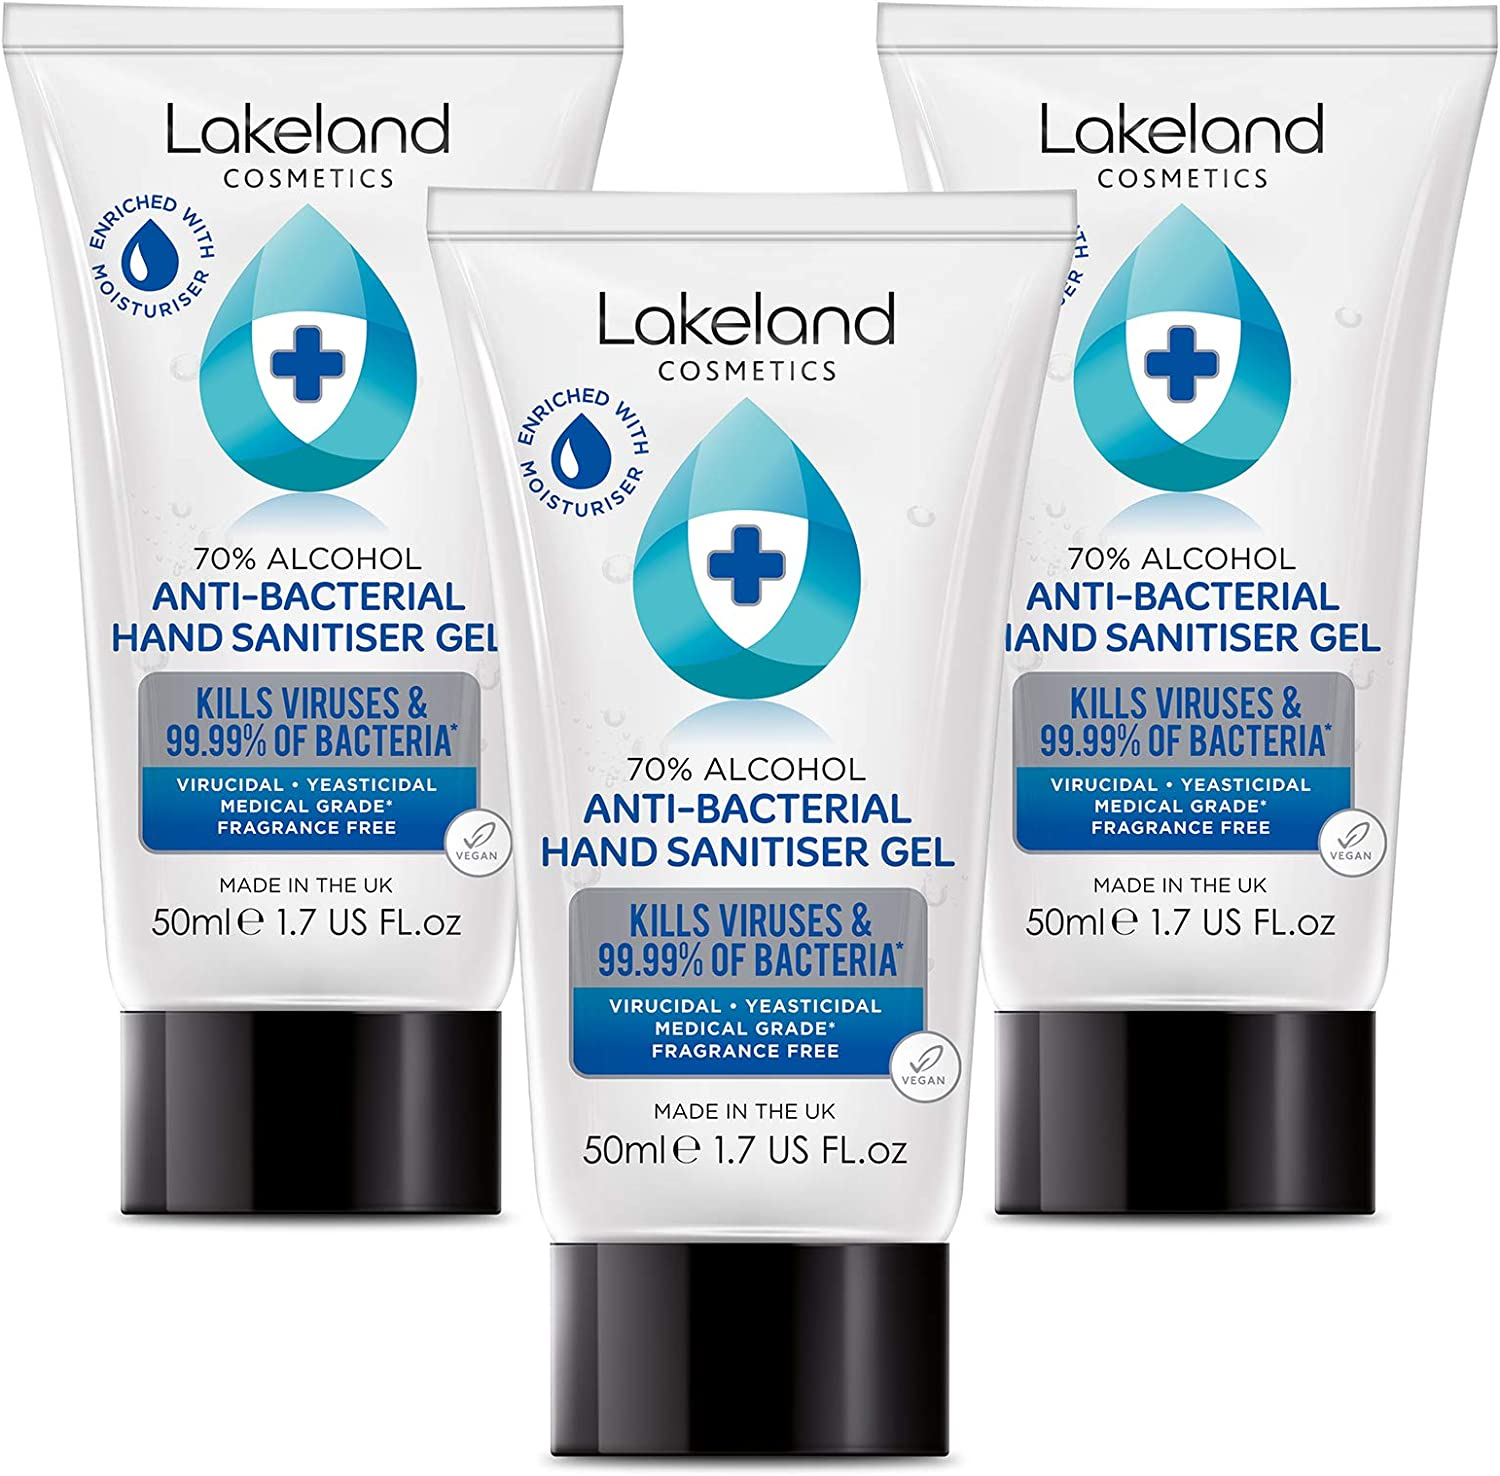 Lakeland Cosmetics 70% Alcohol Moisturising Anti Bacterial Hand Gel 50ml x 3 Pack